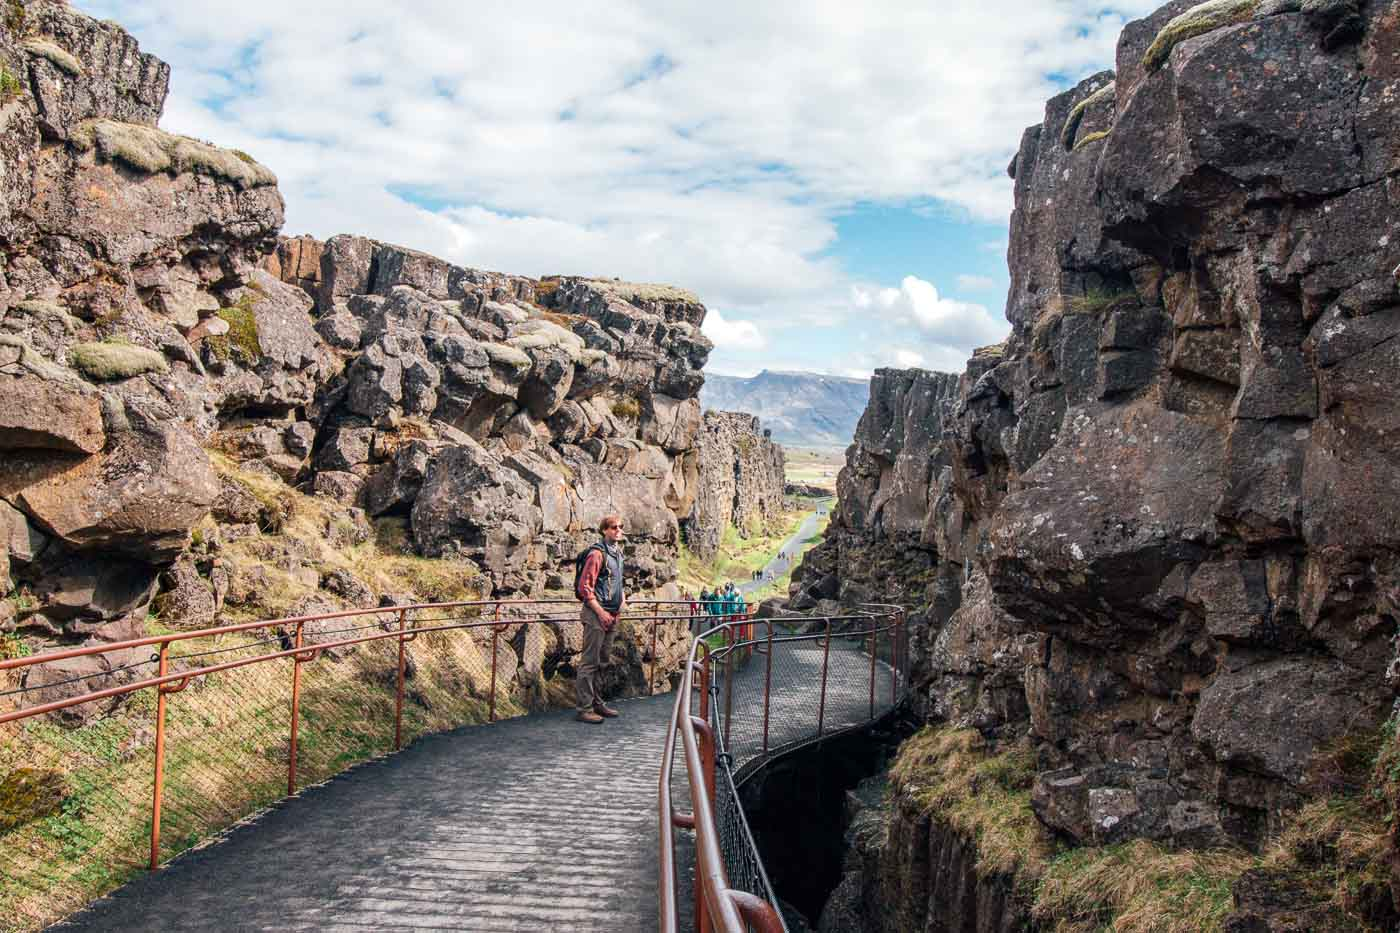 Michael walking on a pathway between rock formations at Thingvellir